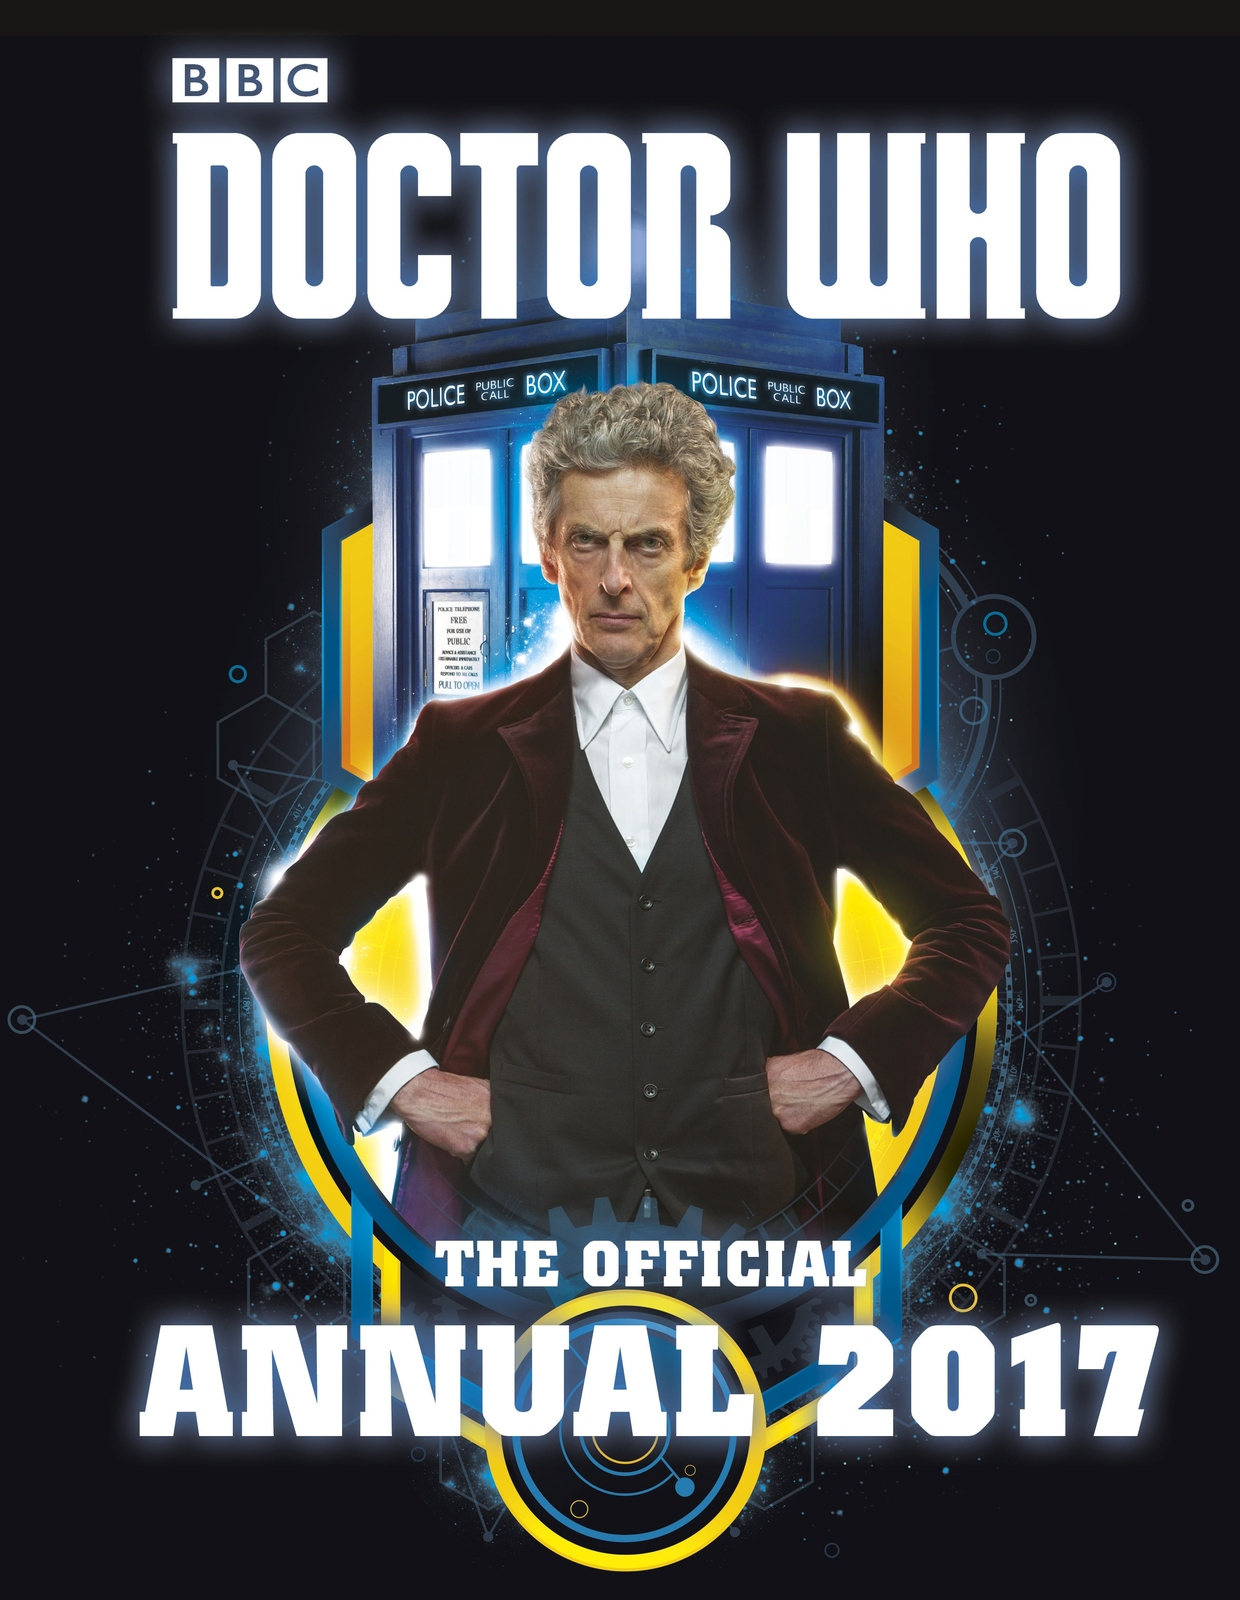 Doctor Who: The Official Annual 2017 image